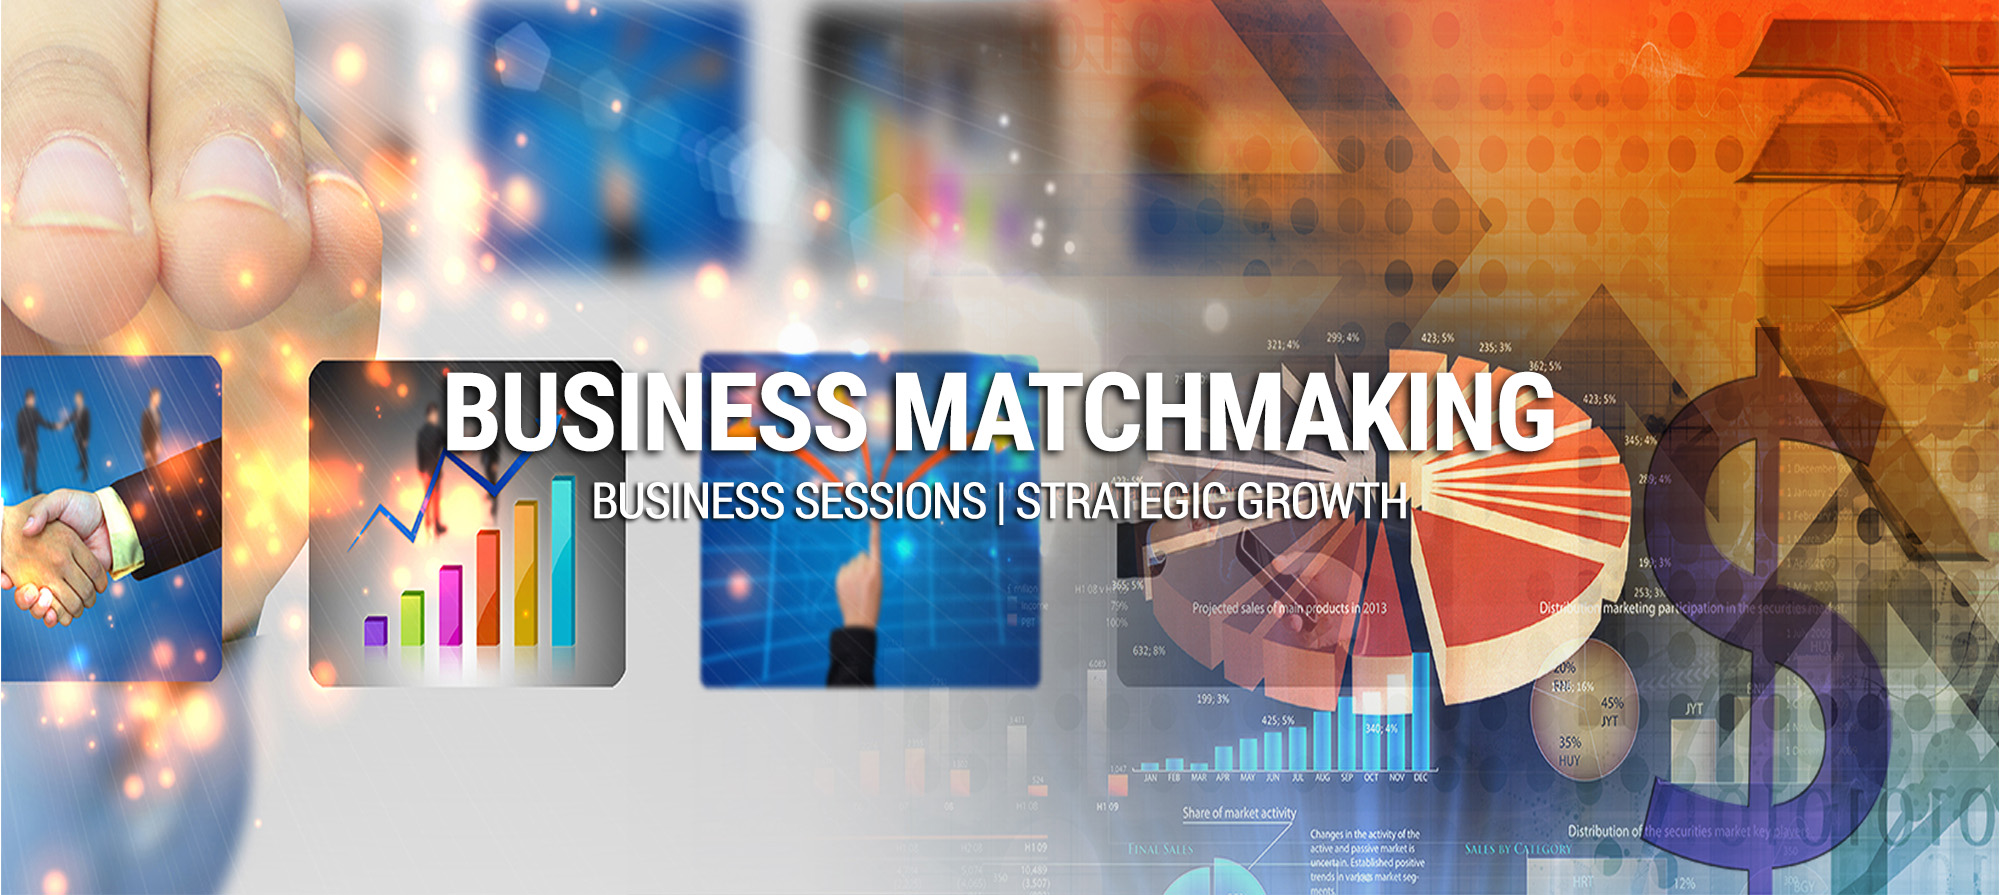 Glorious India - Business Matchmaking